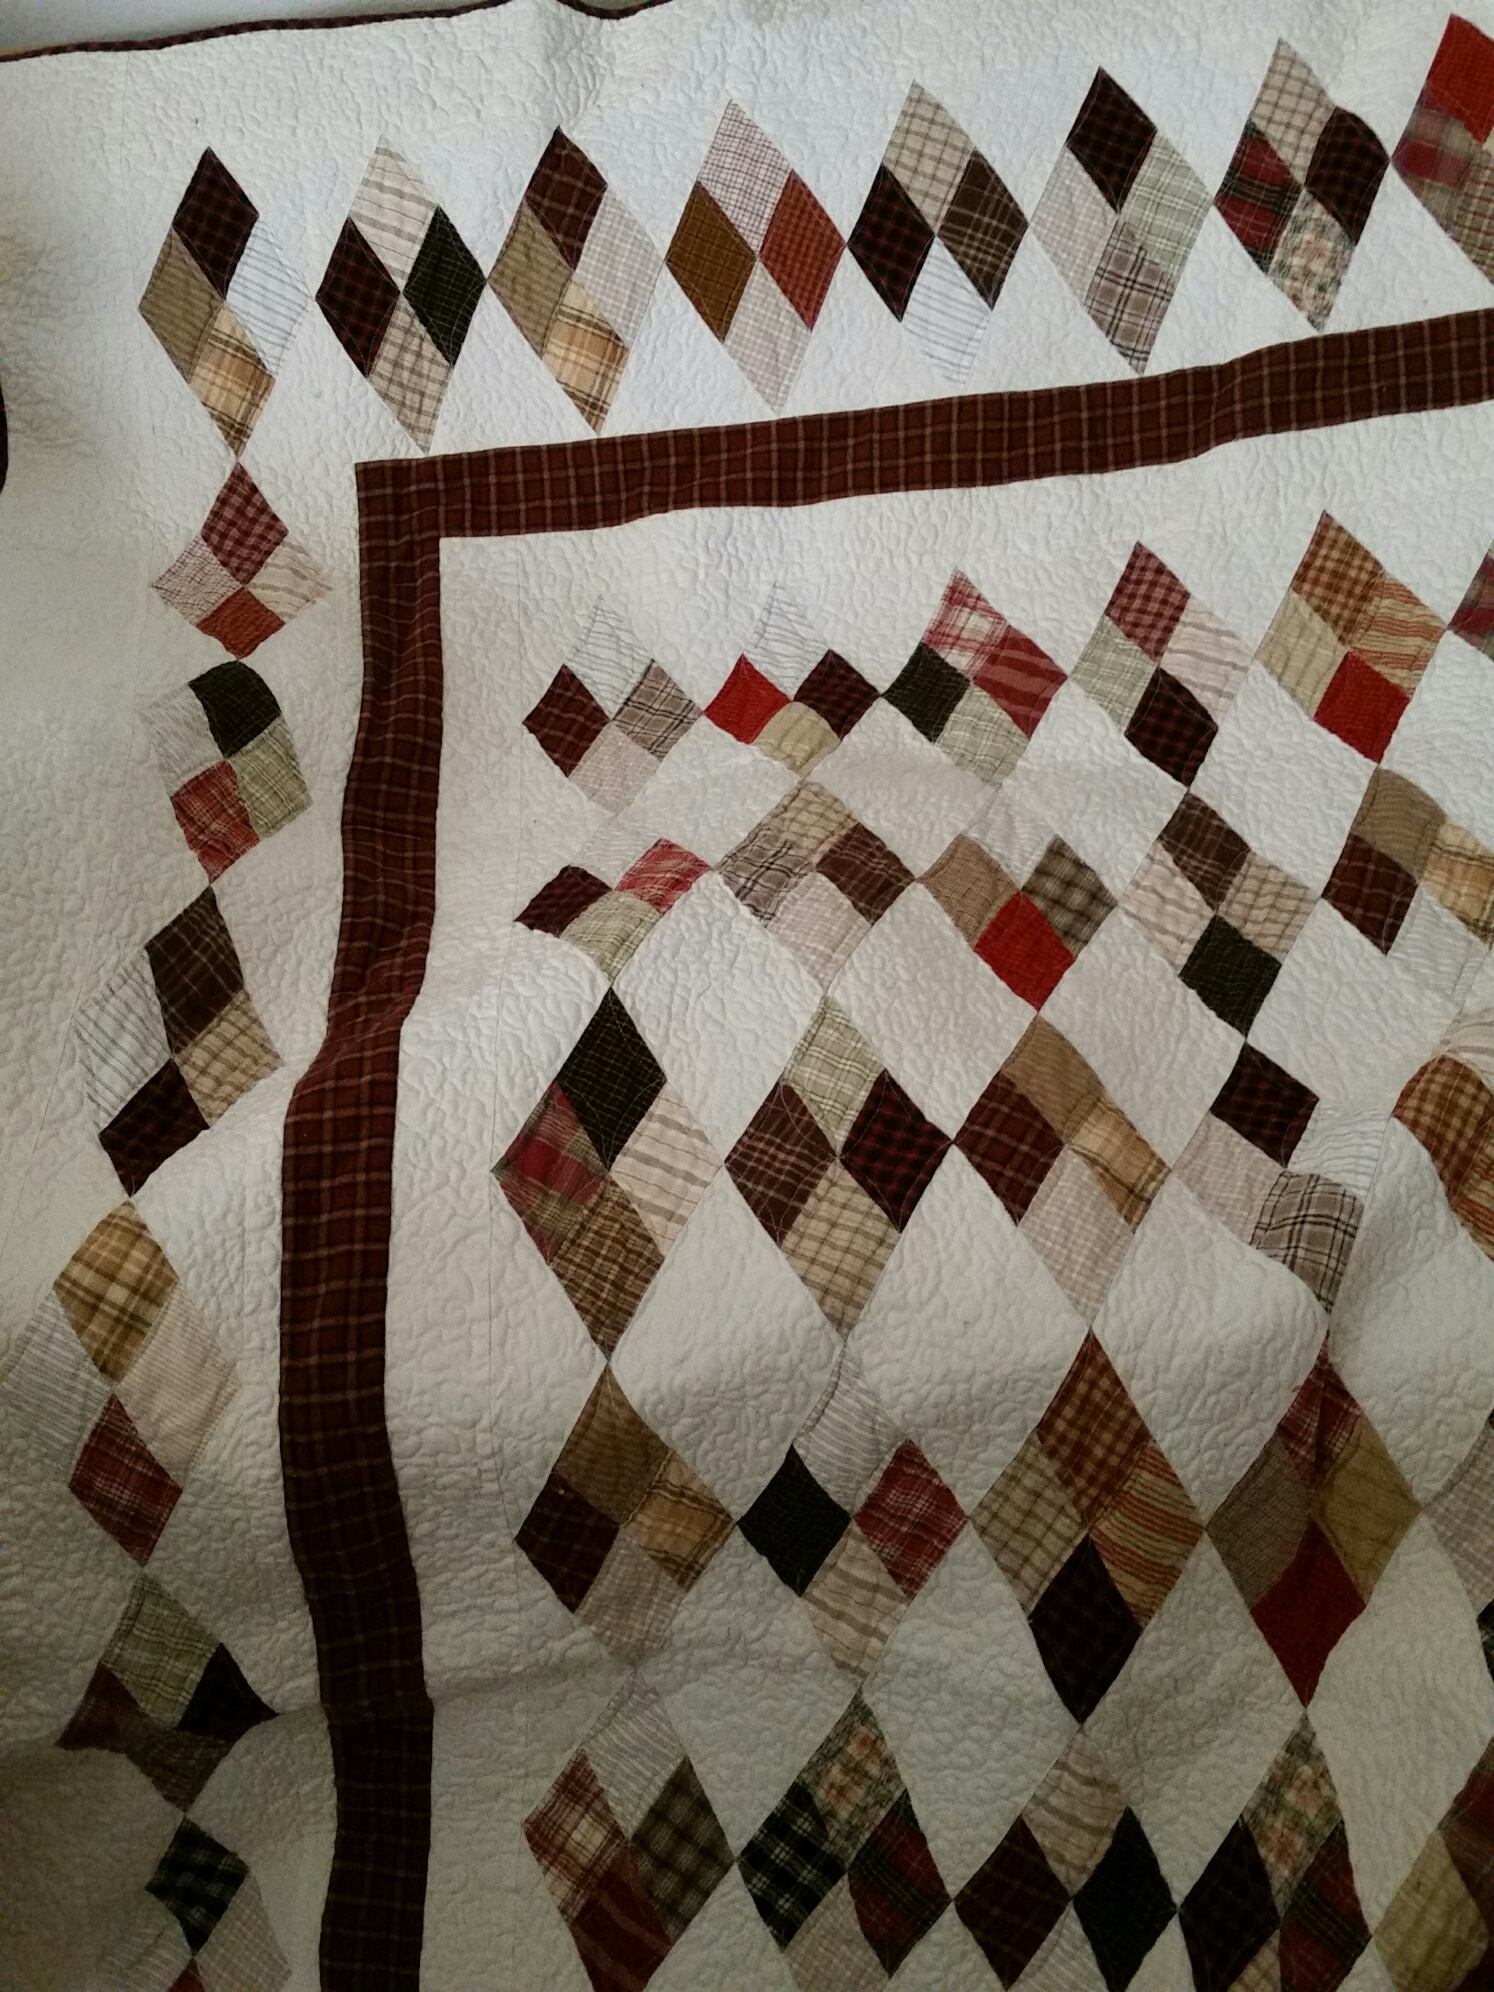 Quilt Patterns For Homespun Fabric : Homespun quilt pattern